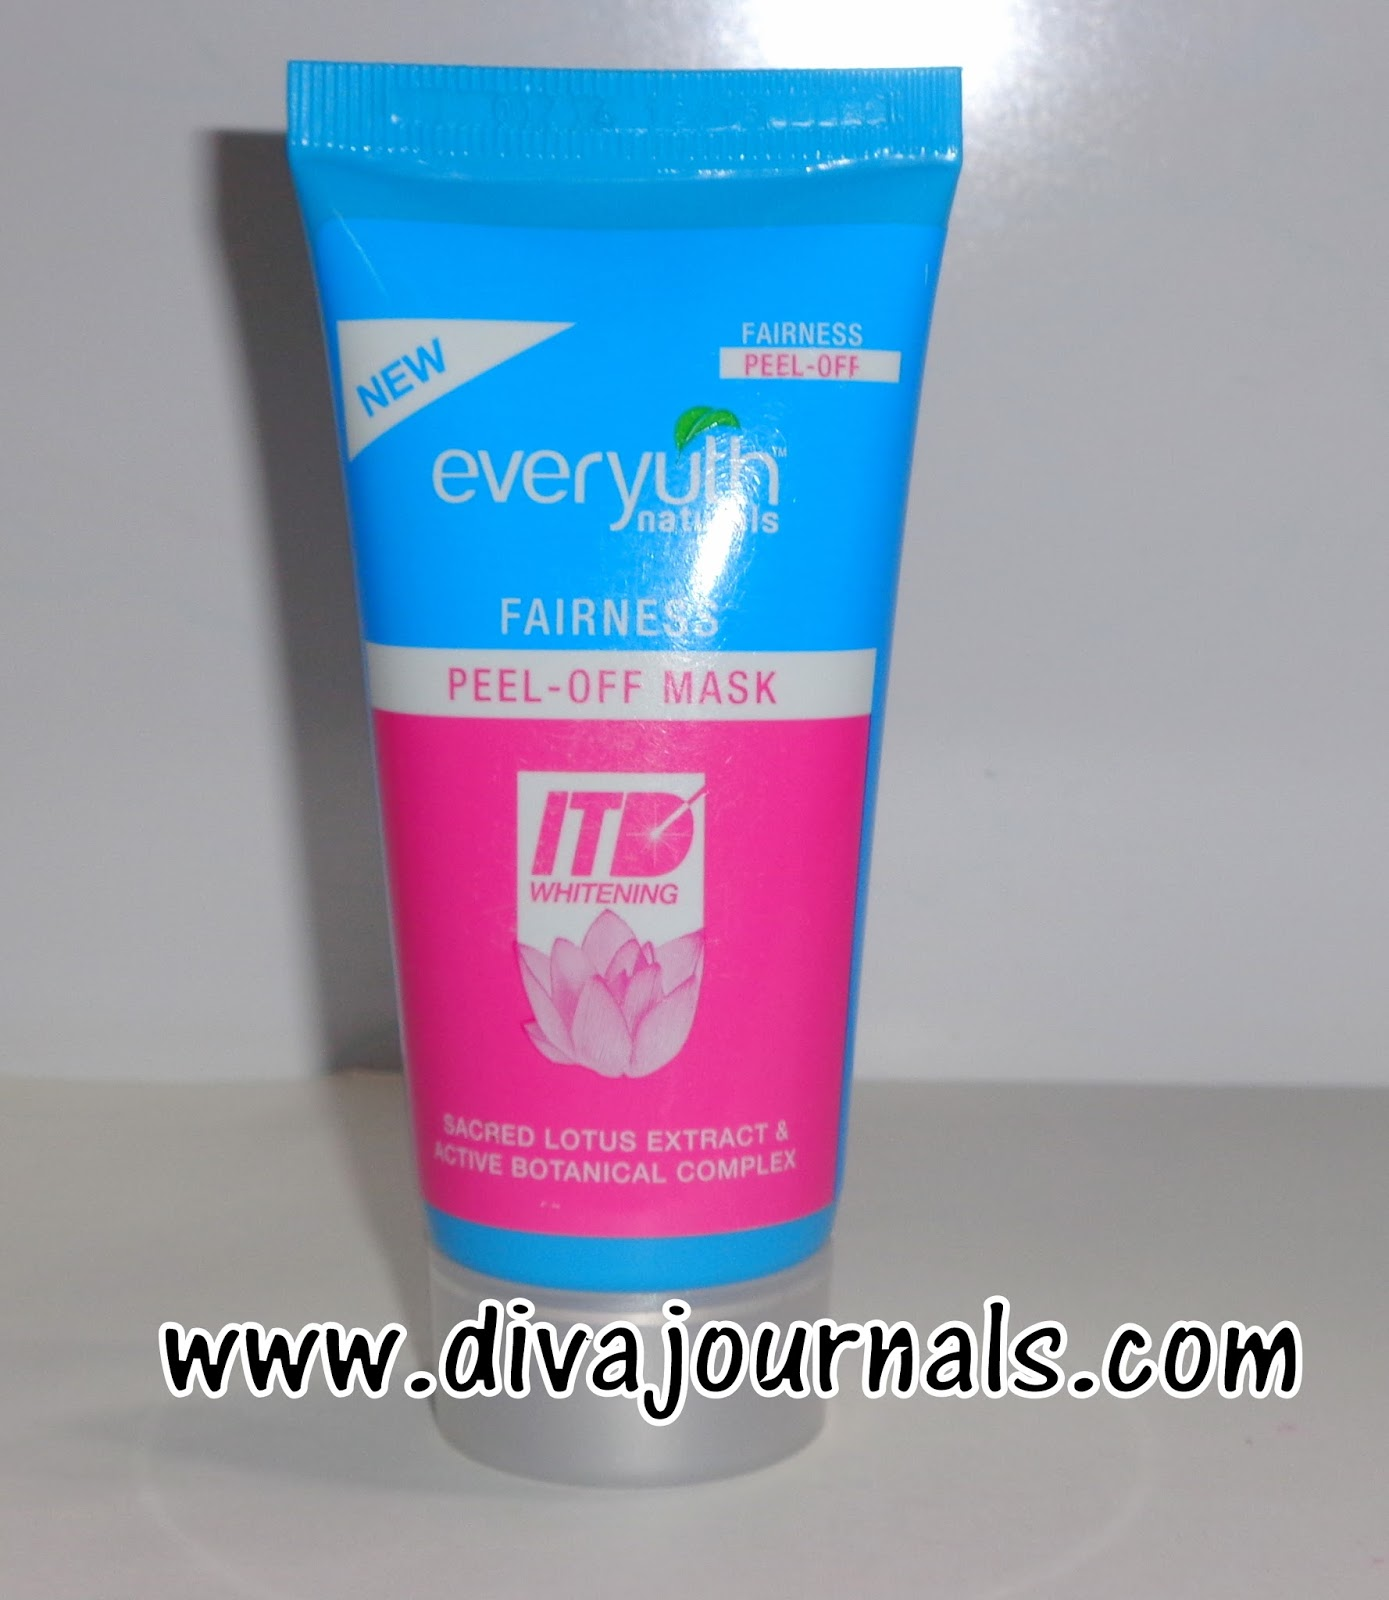 Everyuth Fairness Peel-Off Mask Review